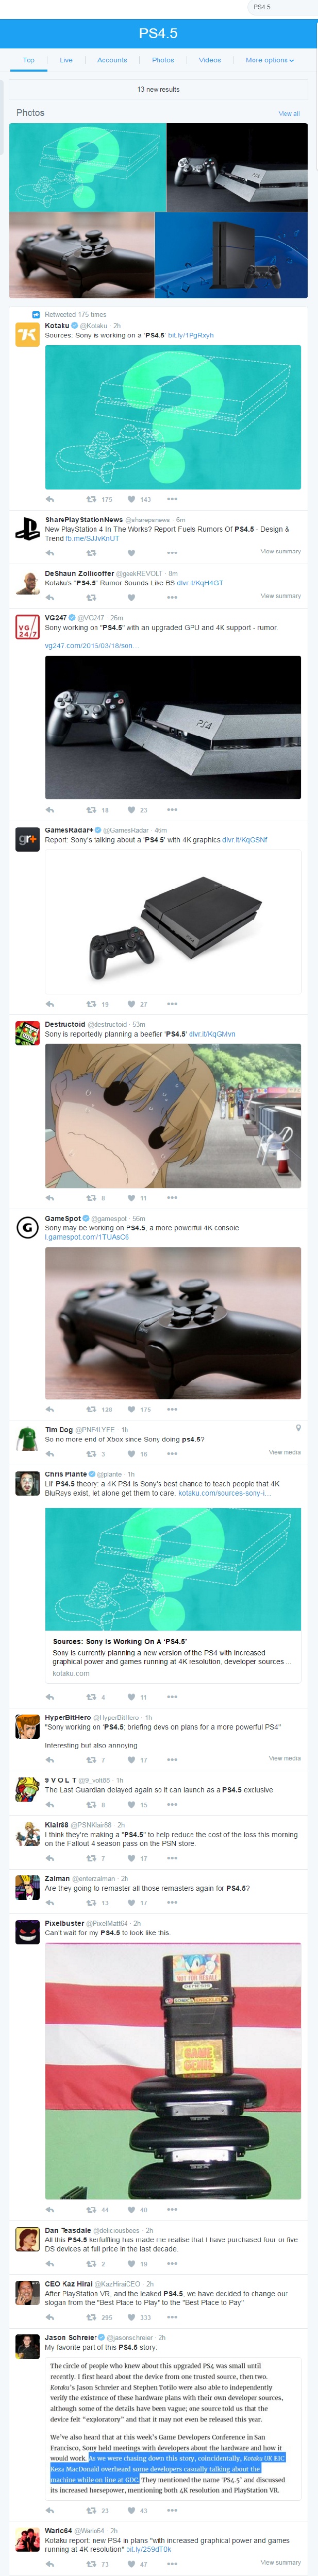 PS4.5TwitterSearch.png